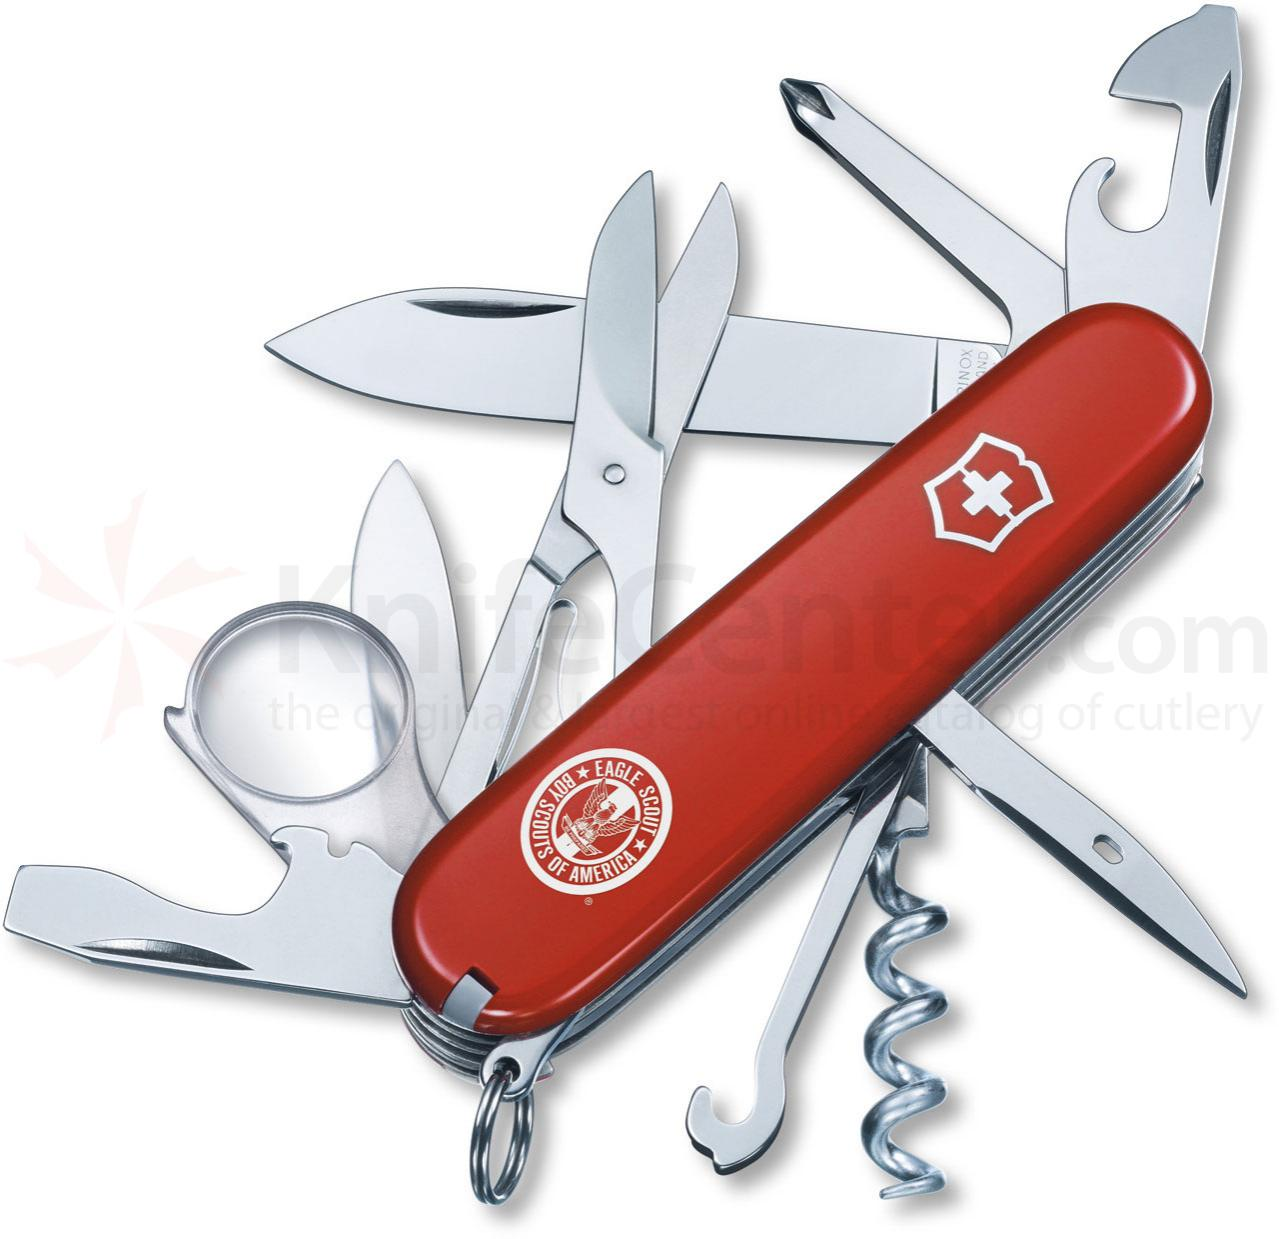 Victorinox Swiss Army Explorer Eagle Scout Multi-Tool, 3-1/2 inch Red Handles